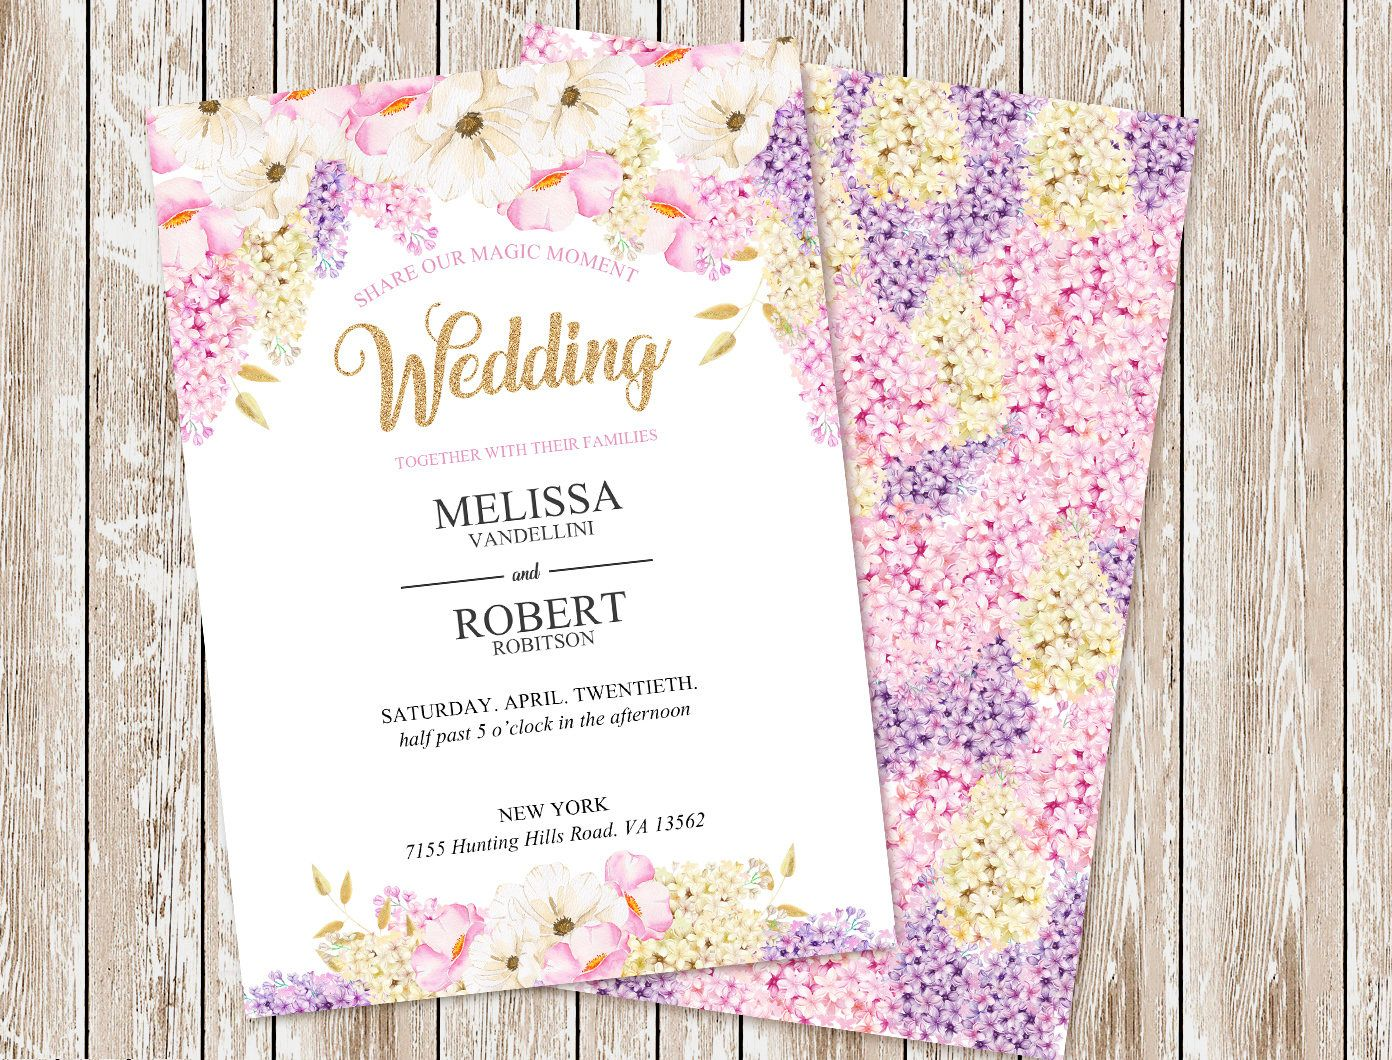 Digital Wedding Invitation, Glitter, Gold, Pink, Flower, Digital ...